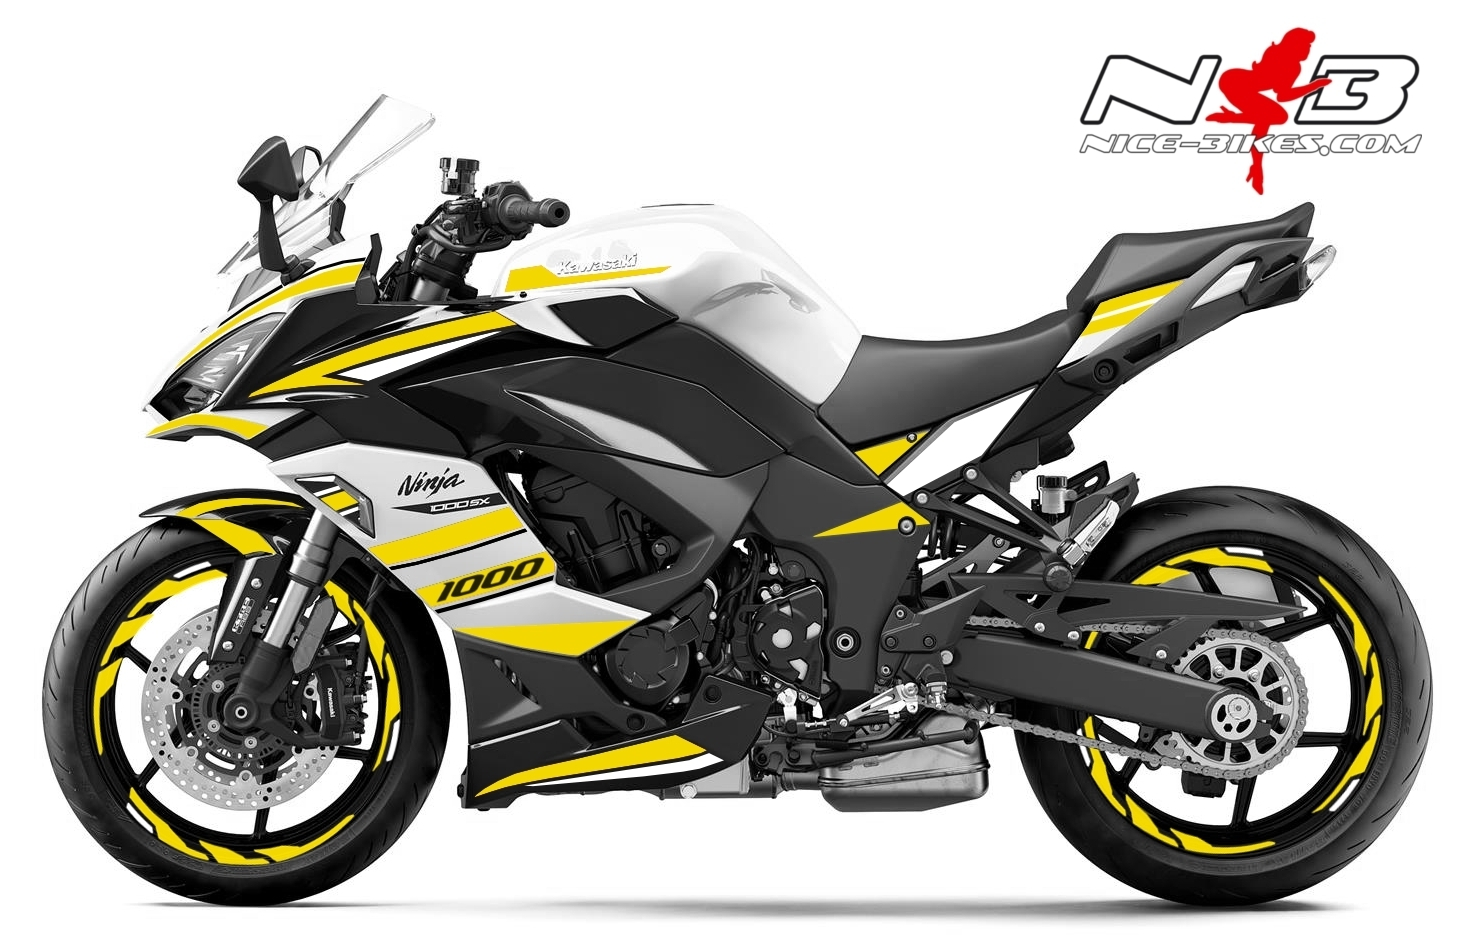 Foliendesign Kawasaki Z1000SX Hornet Yellow